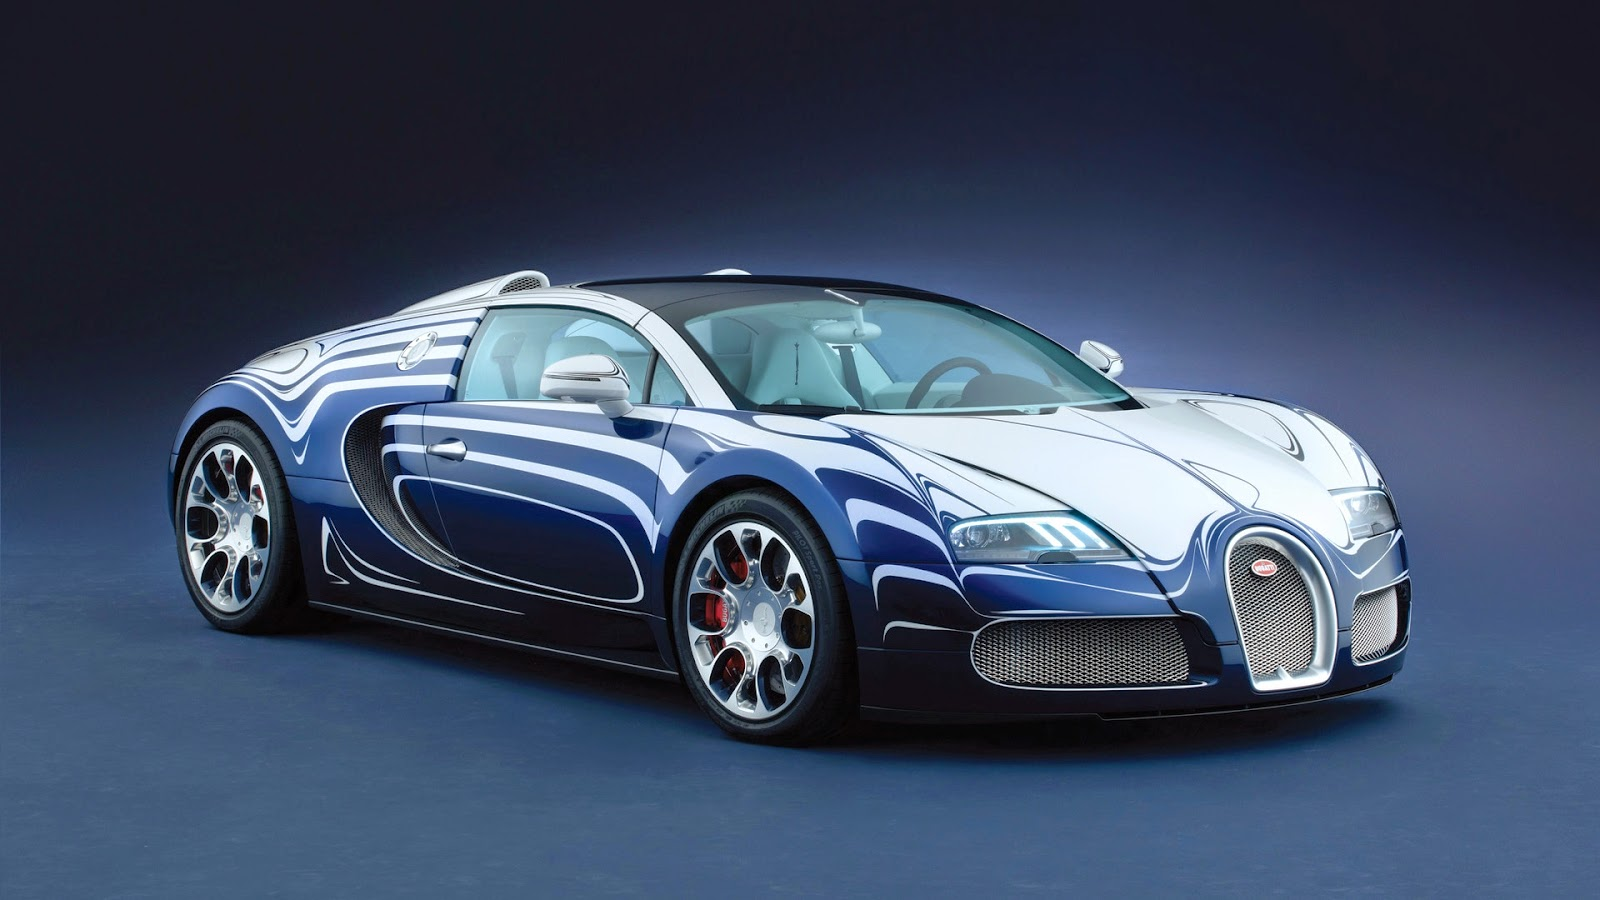 iphonecarfastcoolcarssportscars - Super Fast Cool Cars